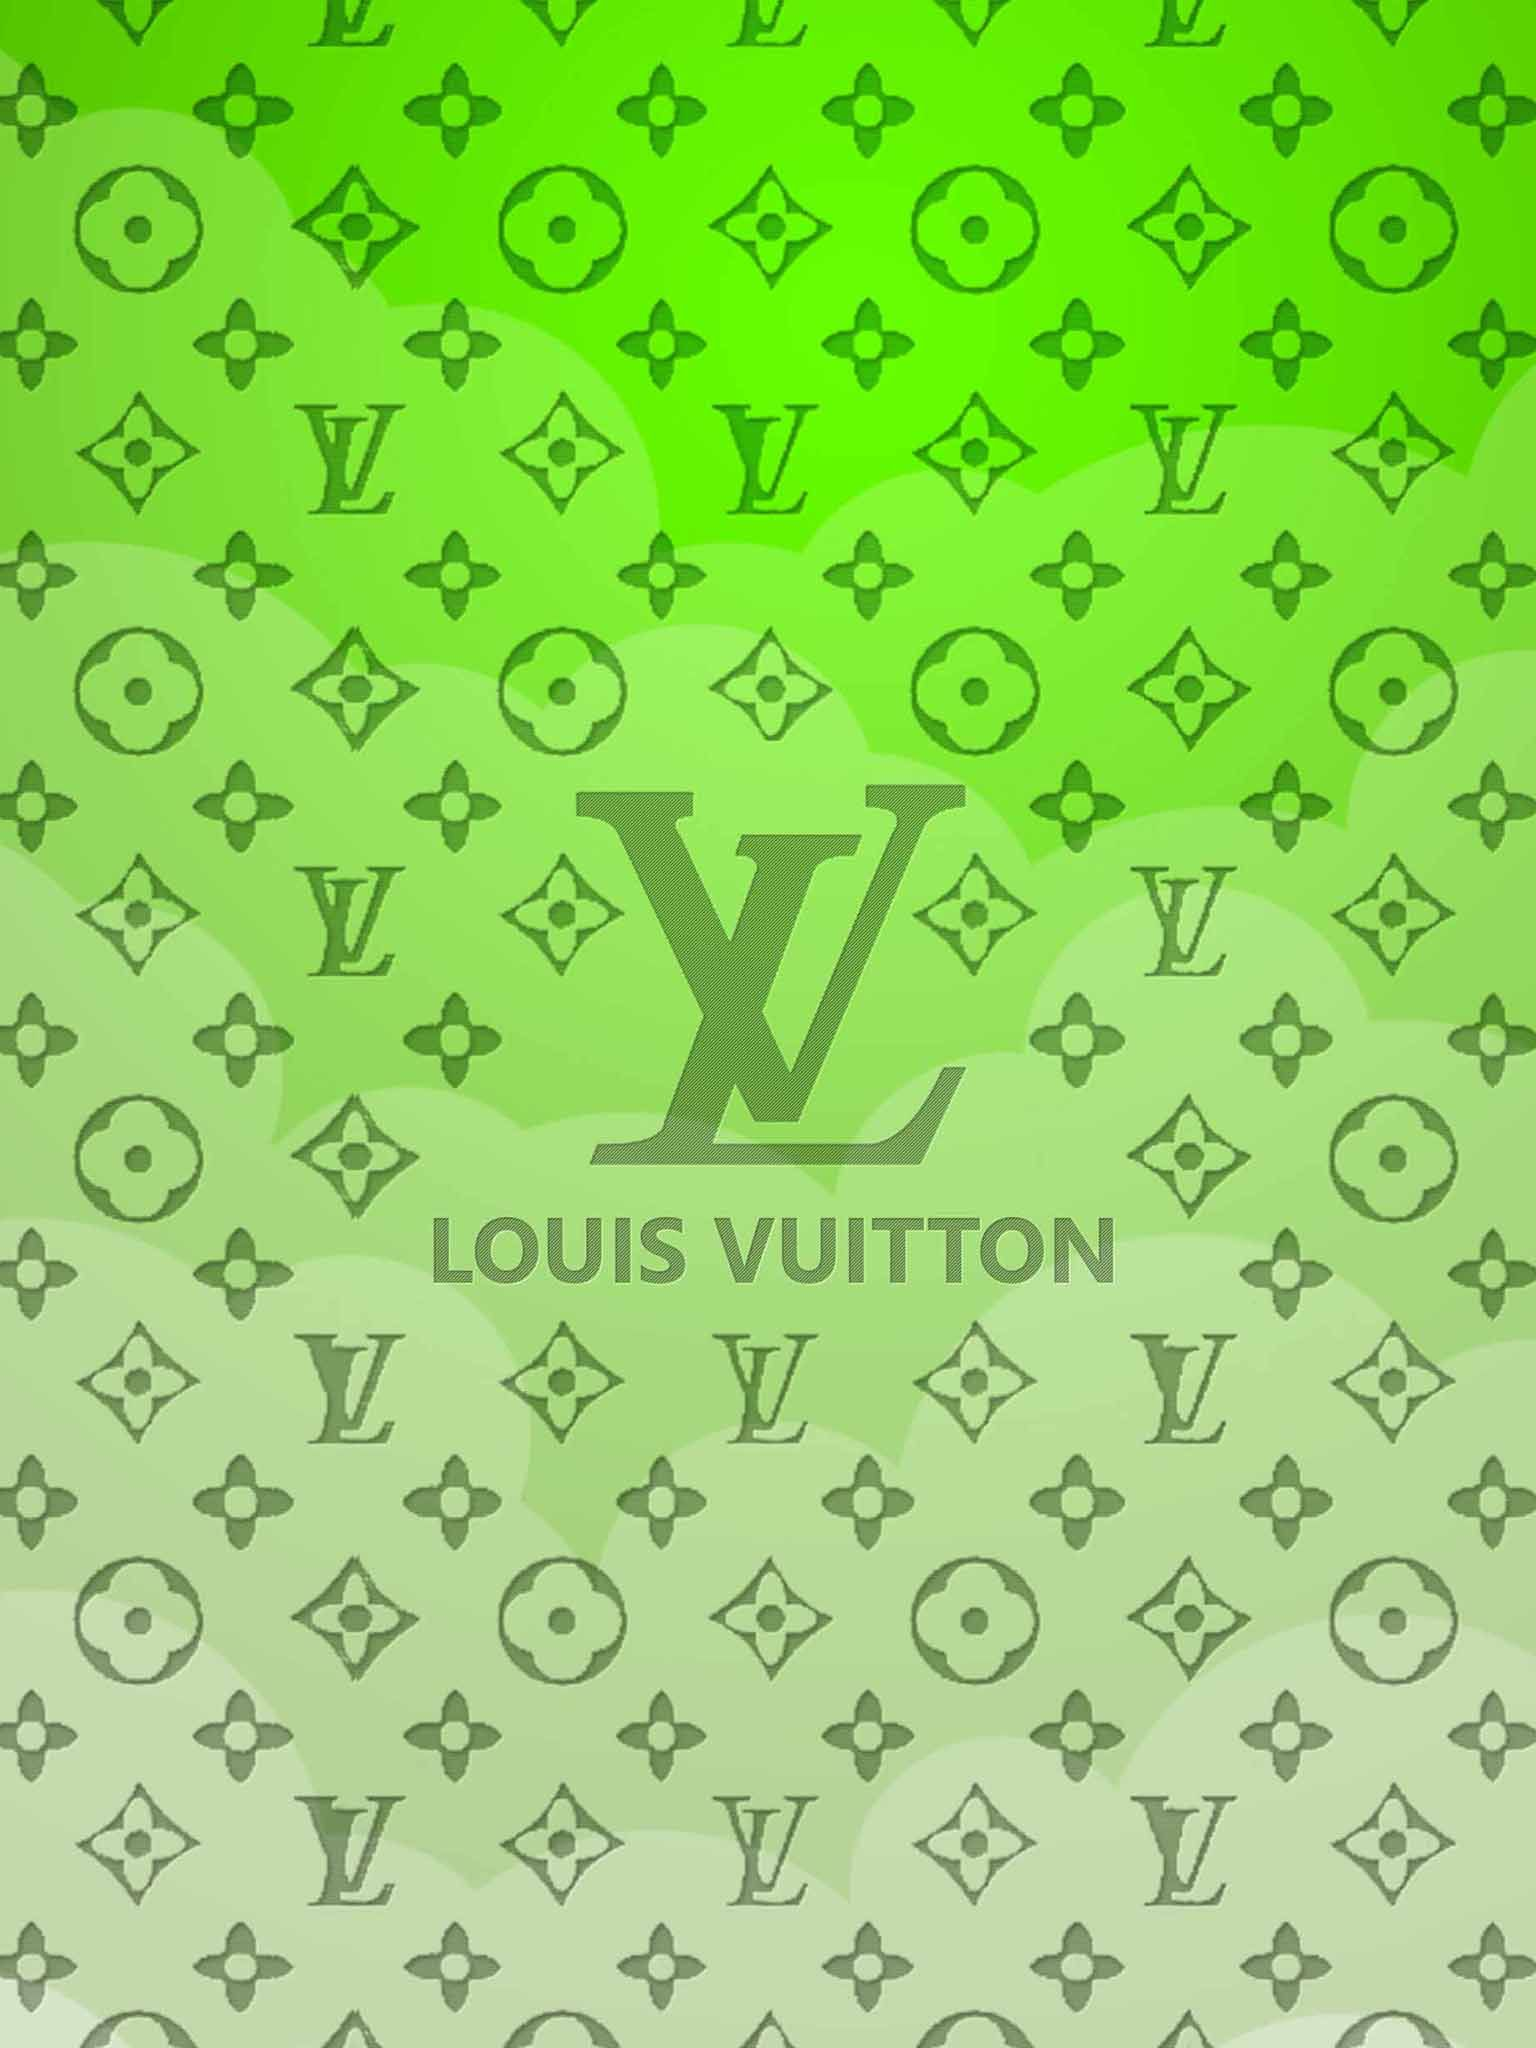 Pin By Free Wallpaper Phone On Louis Vuitton Wallpaper For Ipad Louis Vuitton Iphone Wallpaper Louis Vuitton Cellphone Wallpaper Backgrounds